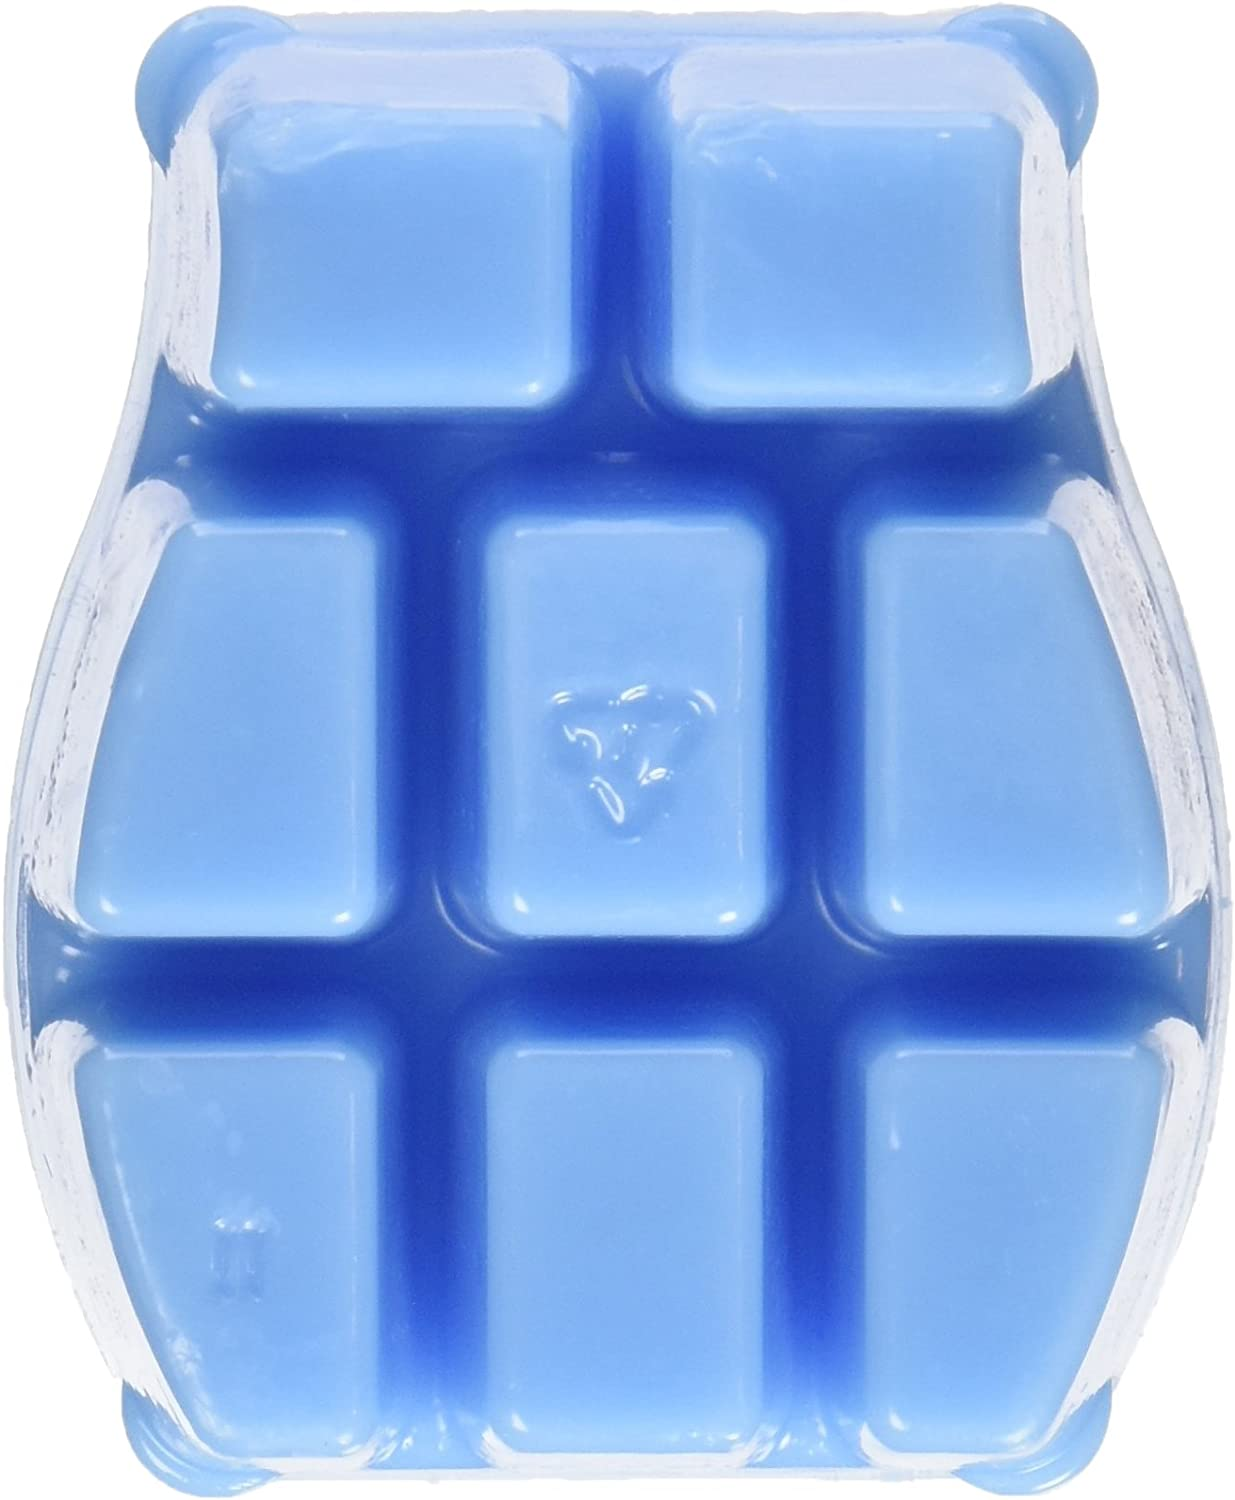 Scentsy, Clean Breeze, Wickless Candle Tart Warmer Wax 3.2 Fl Oz, 8 Squares